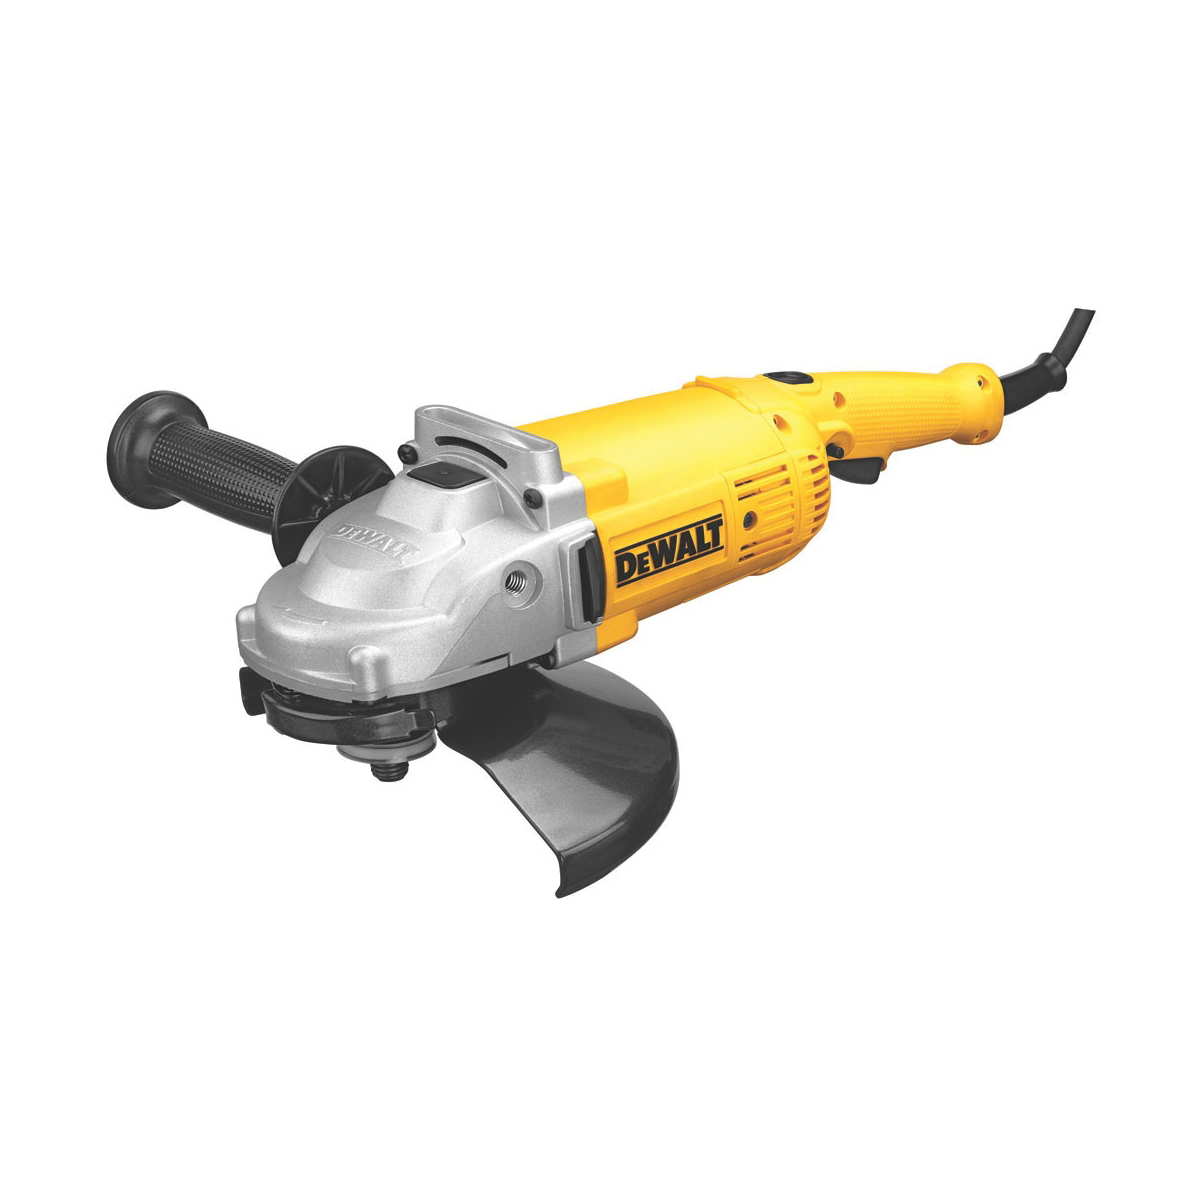 DeWALT® DWE4519 Large Angle Grinder, 9 in Dia Wheel, 5/8-11 Arbor/Shank, 120 VAC, Yellow, Lock-On/Off Trigger Switch